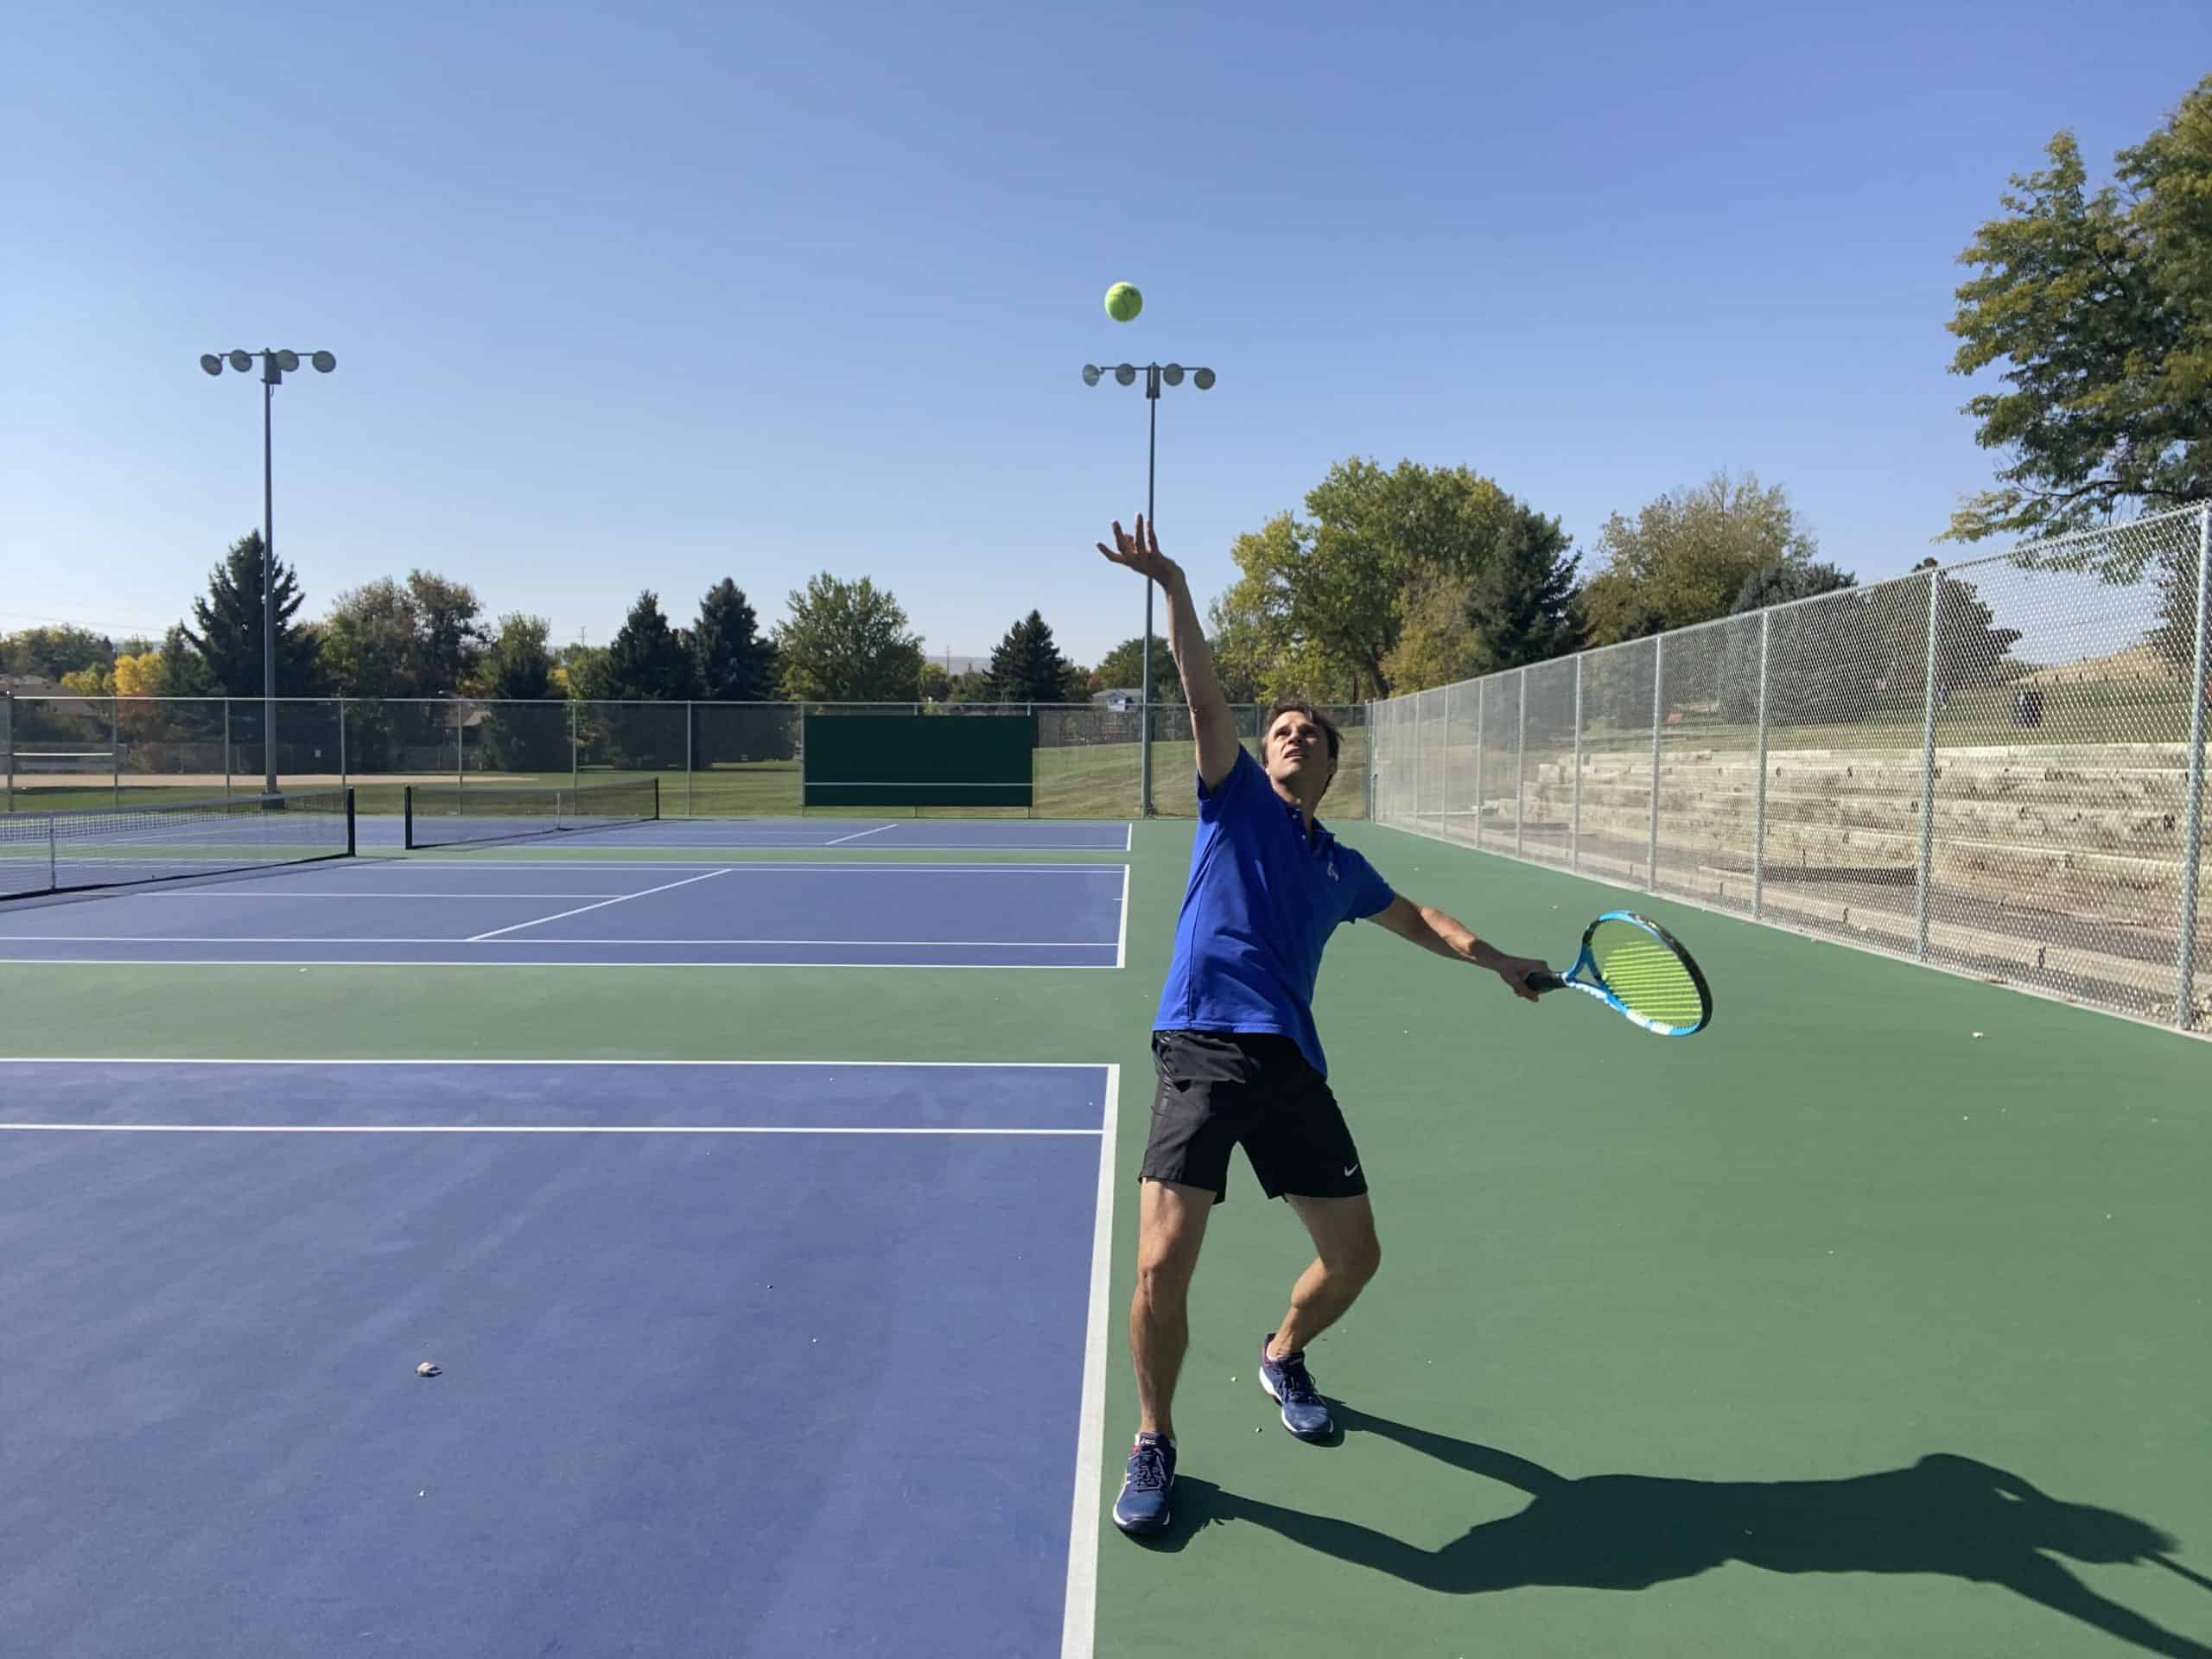 First move on your tennis serve